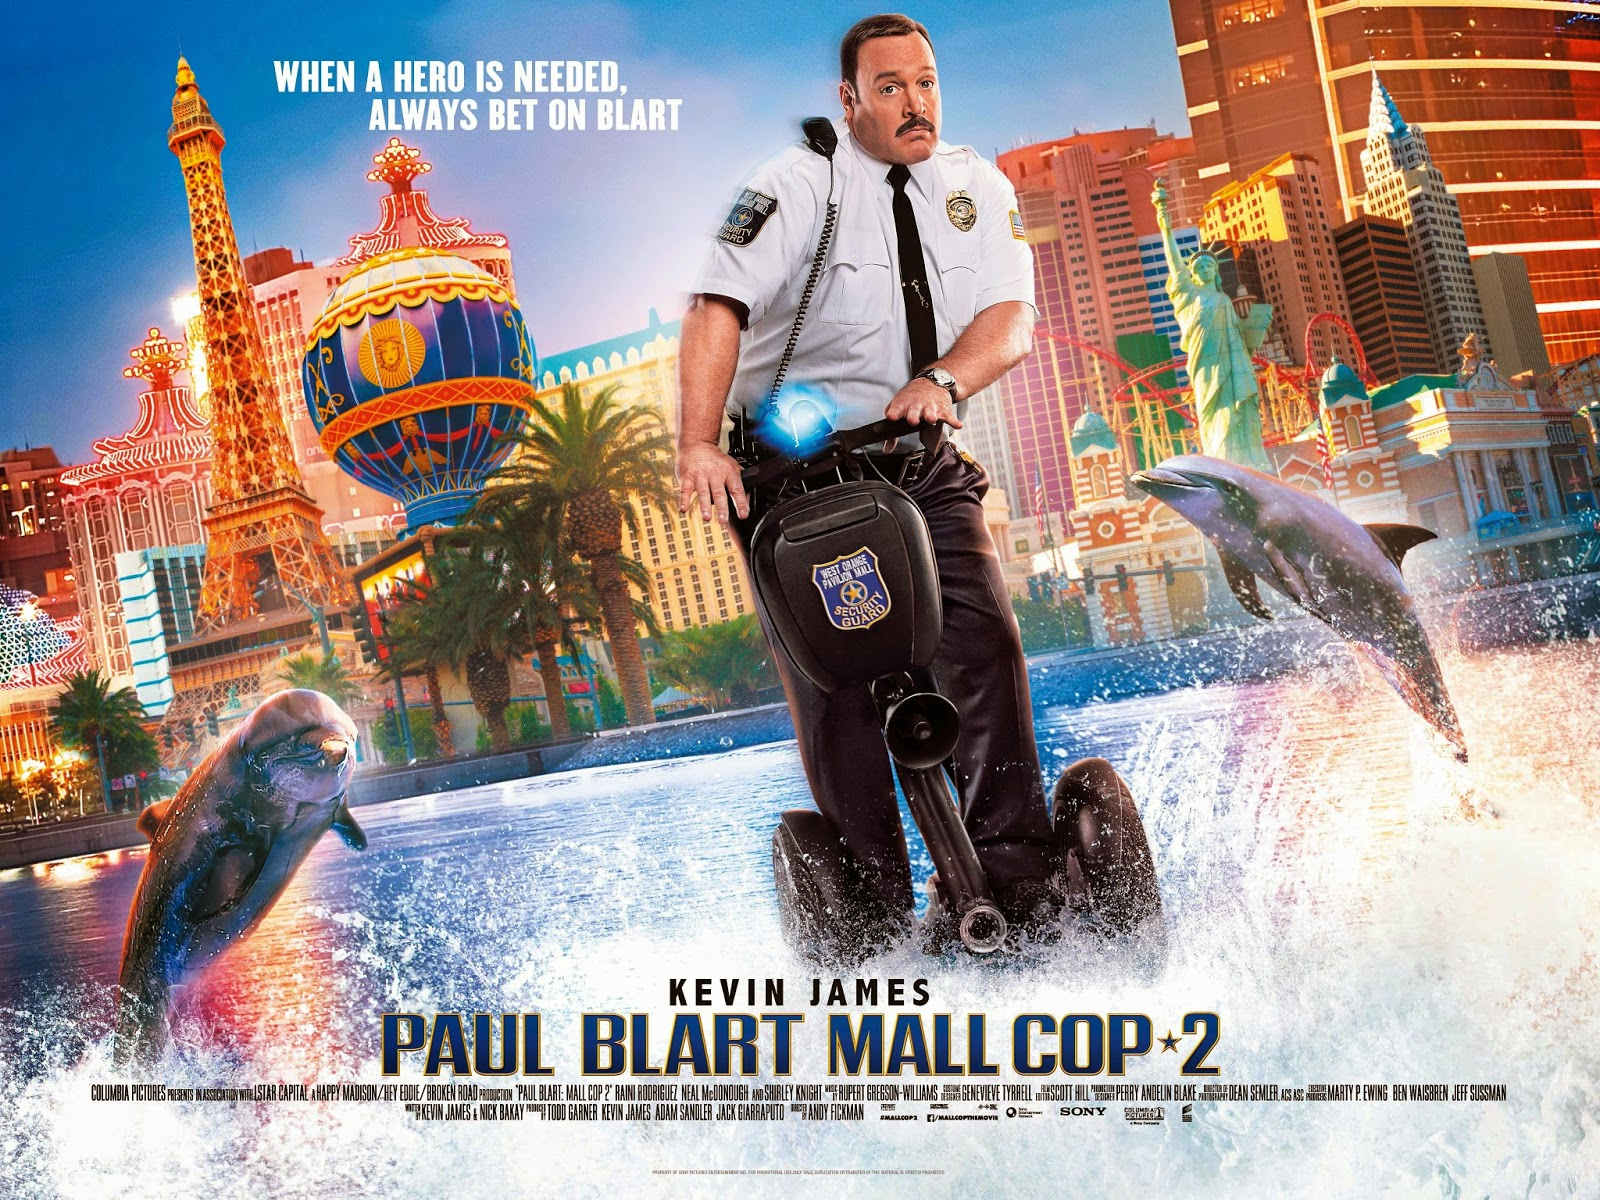 Download movies for free online paul blart: mall cop.